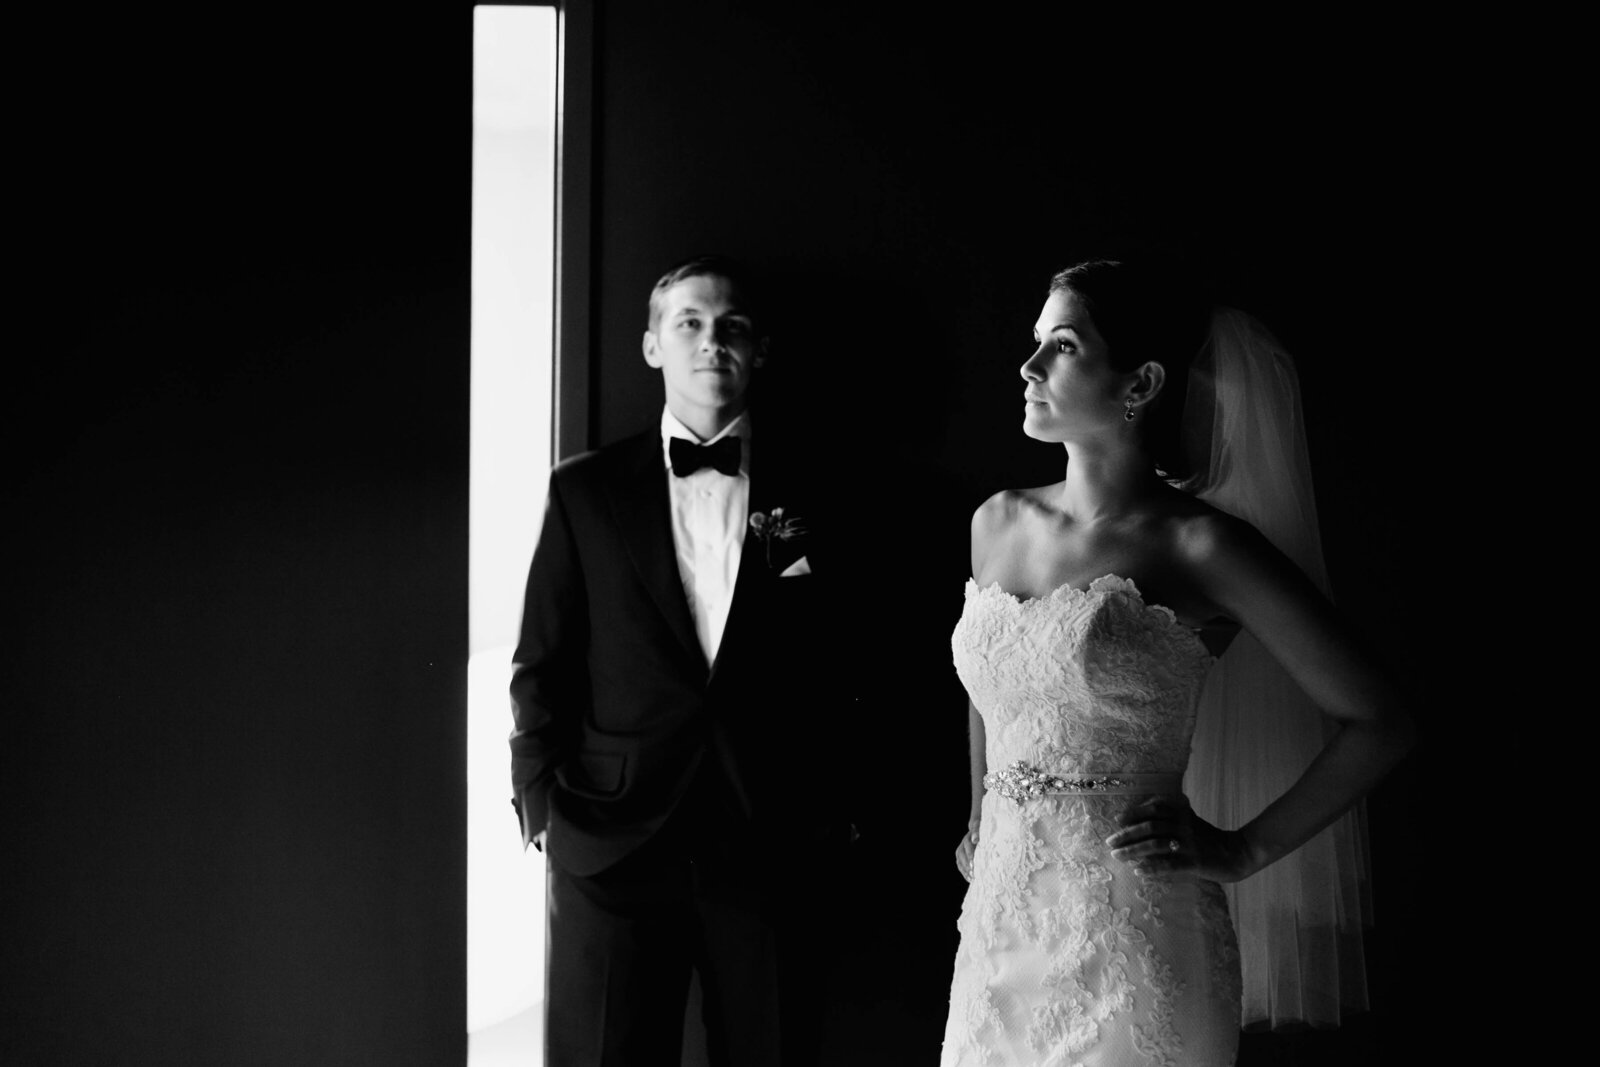 bride and groom in window light